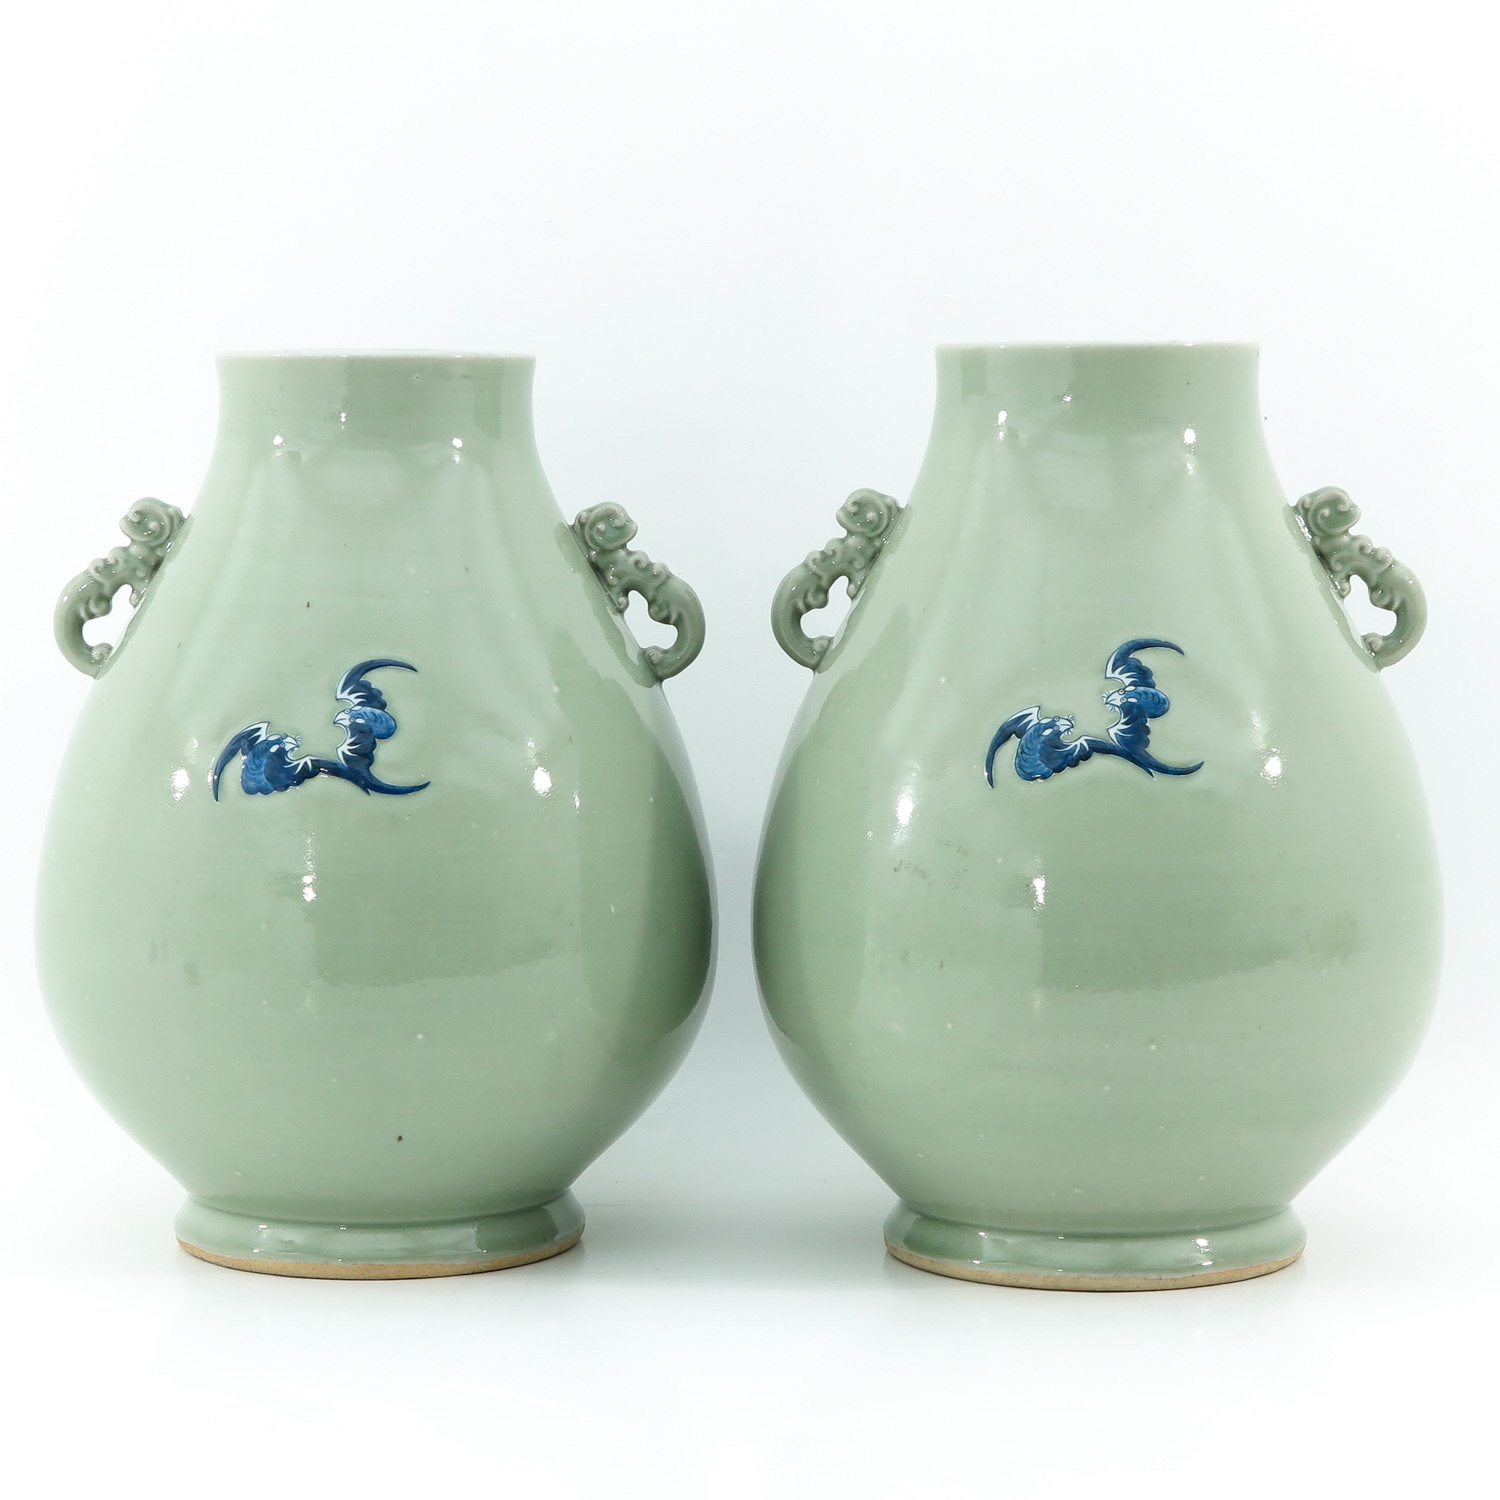 A Pair of Celadon and Blue Hu Vases - Image 3 of 10